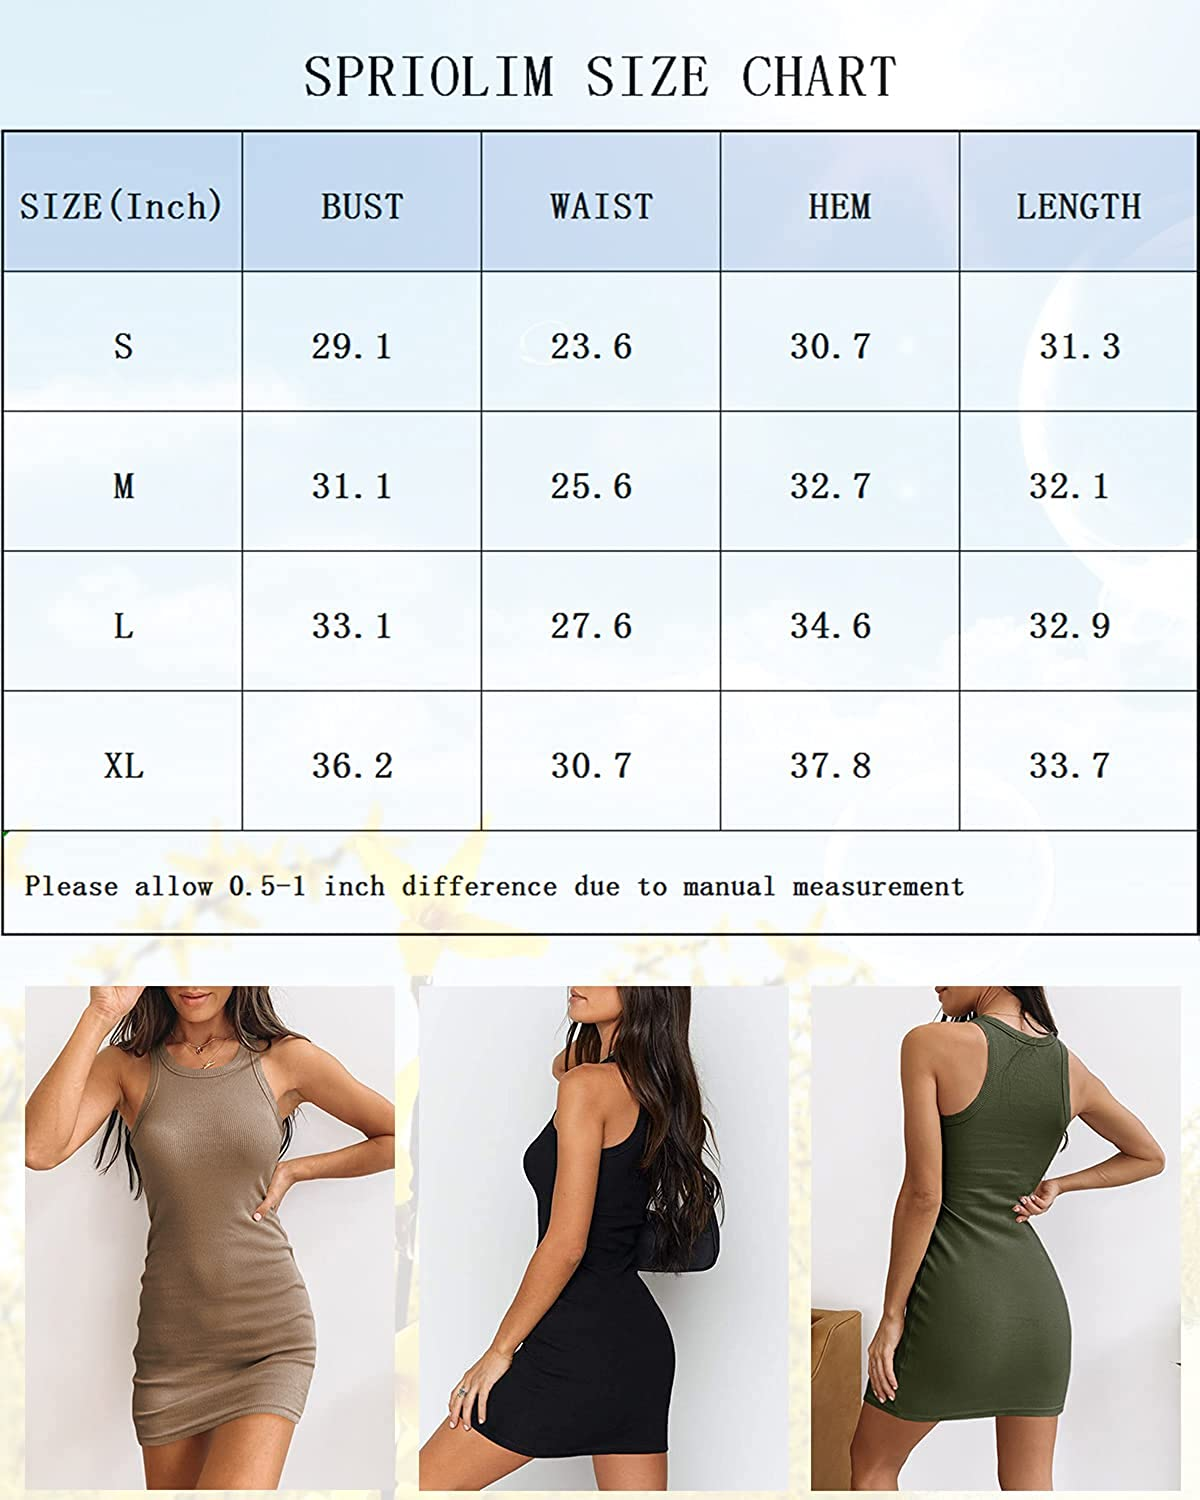 Spriolim Women's Bodycon Dresses Ribbed Solid Color Crew Neck Casual Short Dresses